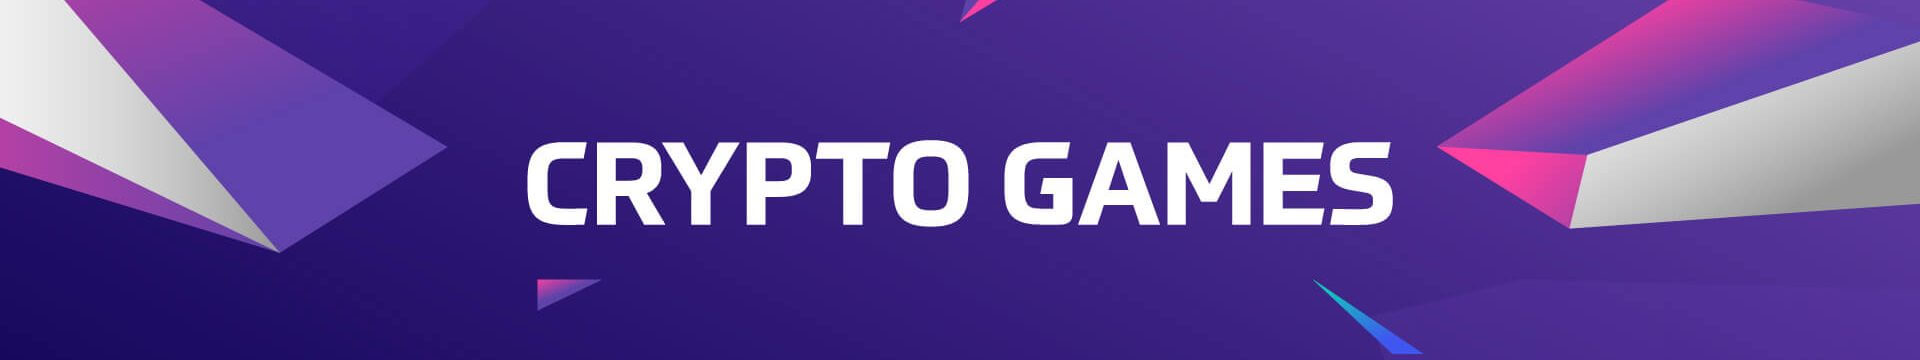 crypto games banner